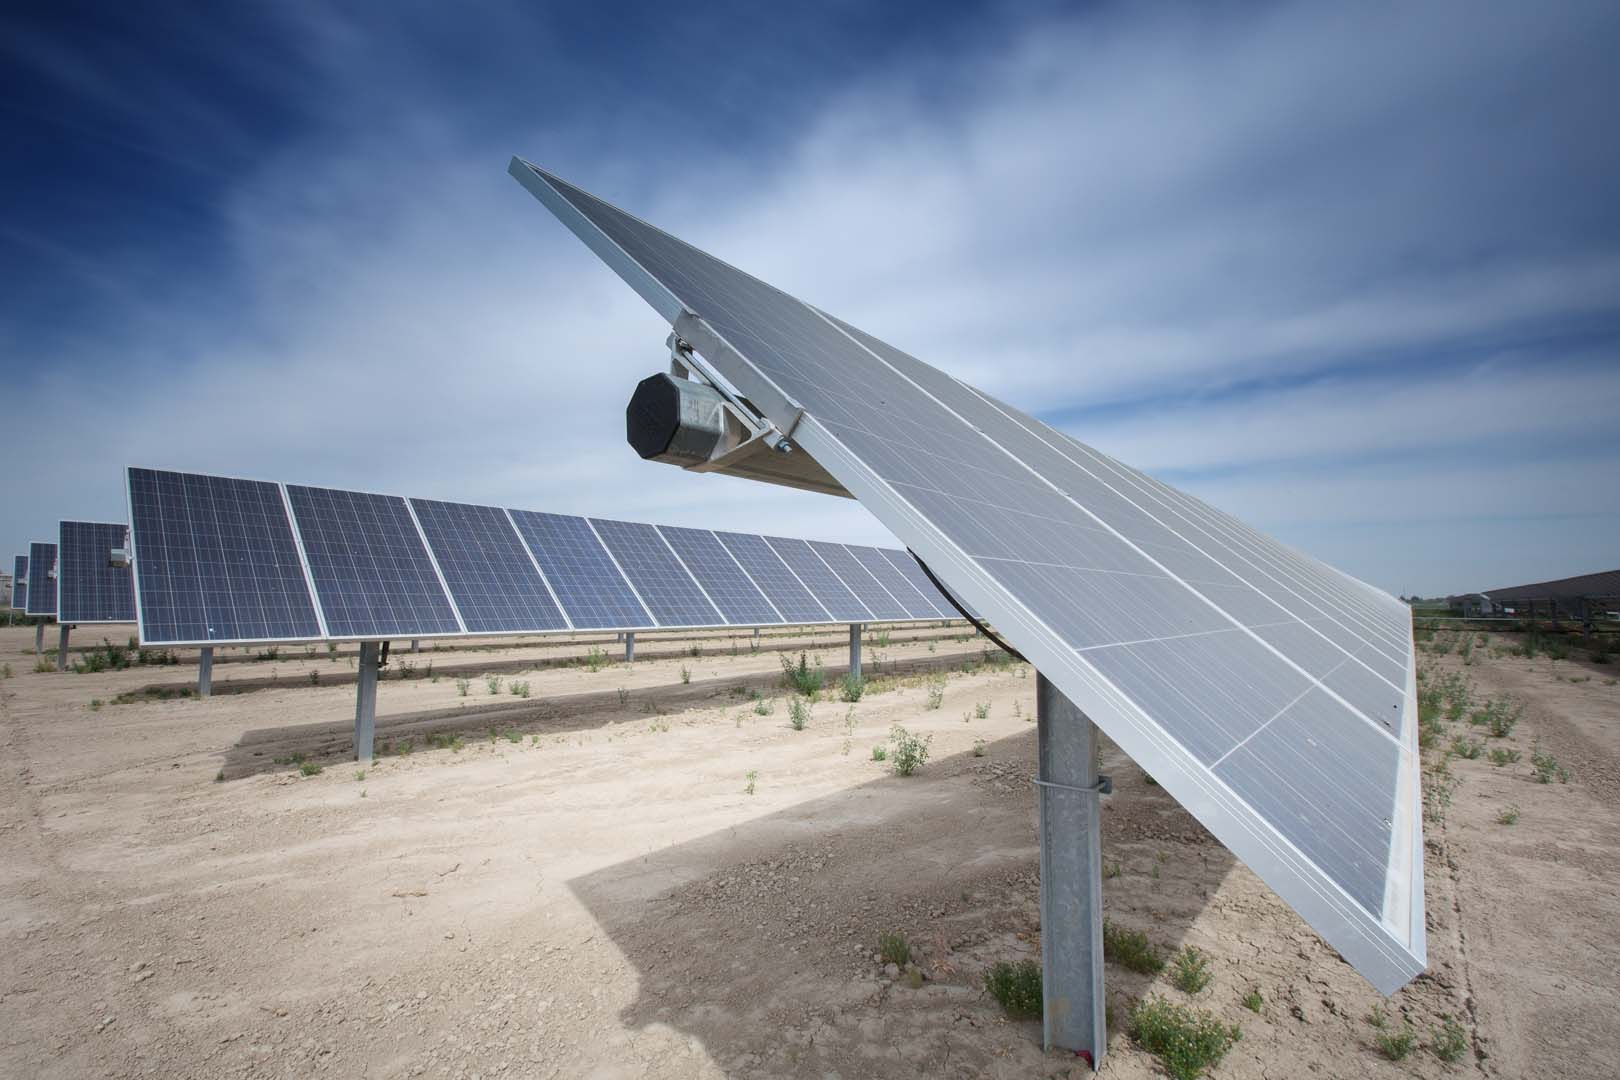 The project will be Lighthouse Infrastructure's second utility-scale Solar PV investment. Credit: Lighthouse